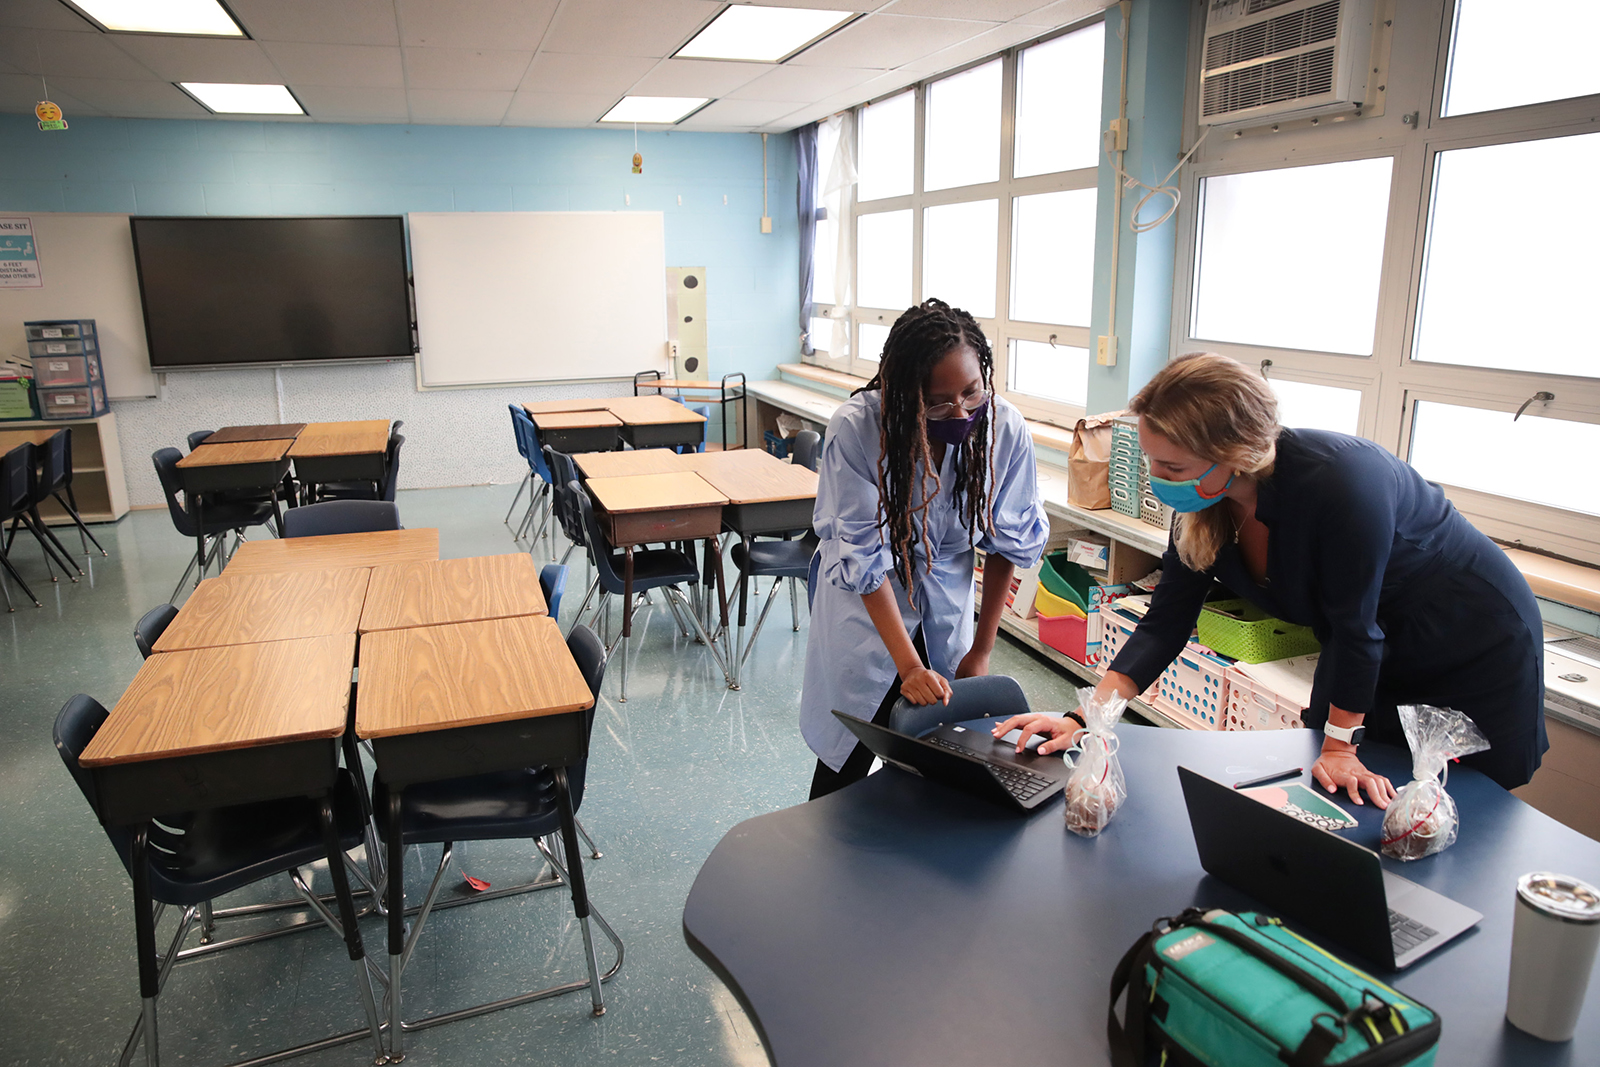 Jasmine Gilliam and Lucy Baldwin, teachers at King Elementary School, prepare to teach their students remotely in empty classrooms during the first day of classes on September 8, in Chicago.